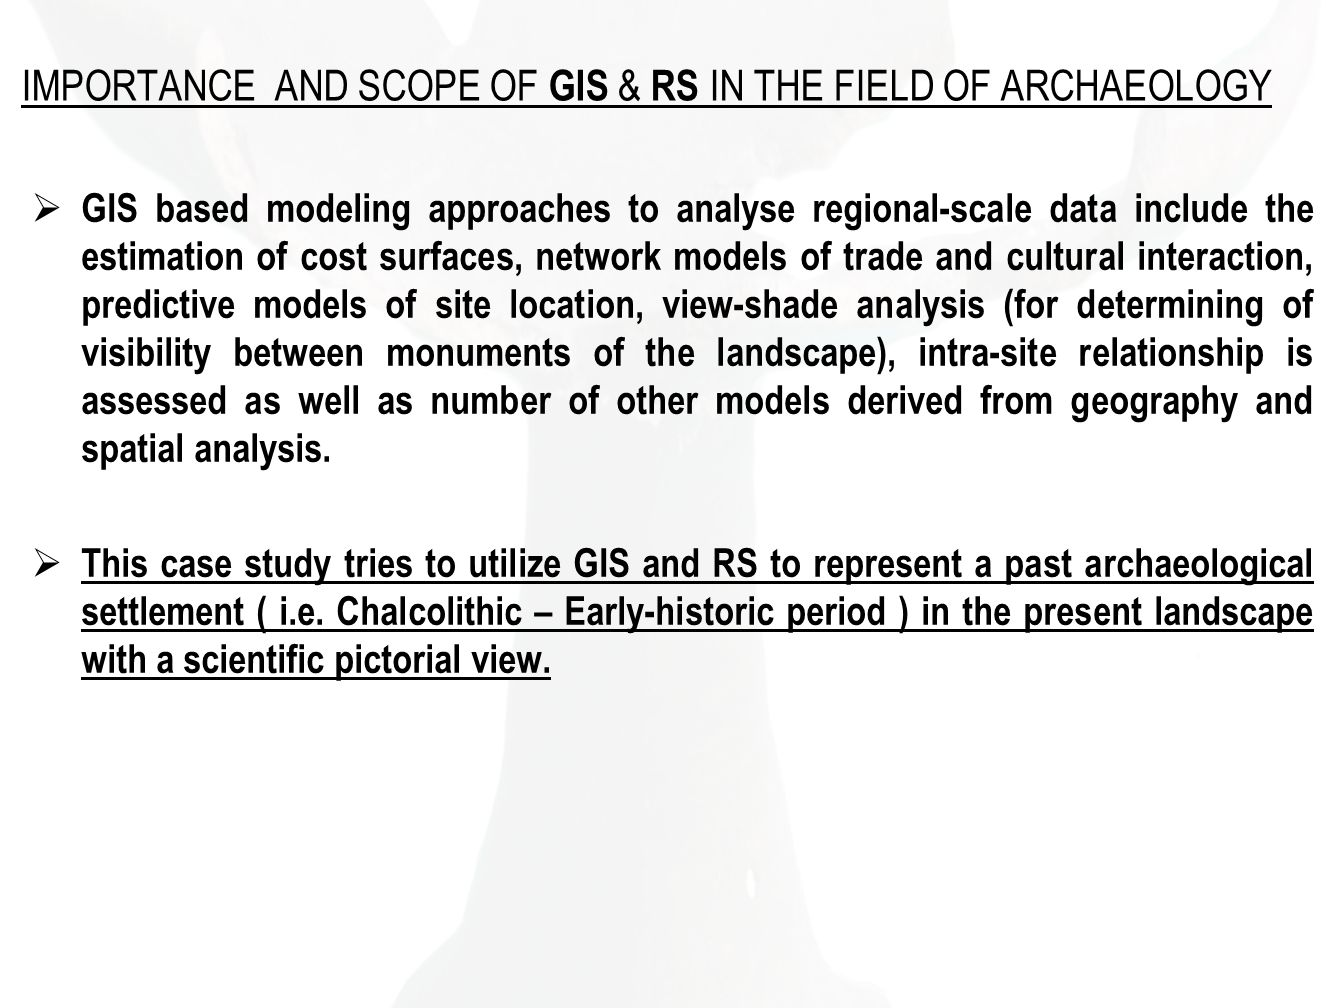 PRELIMINARY OBSERVATIONS Some sites located on fluvial terraces were stable settlements, where a full range of riverine activities was noticed belonging to the Chalcolithic period to the Early- historic period.